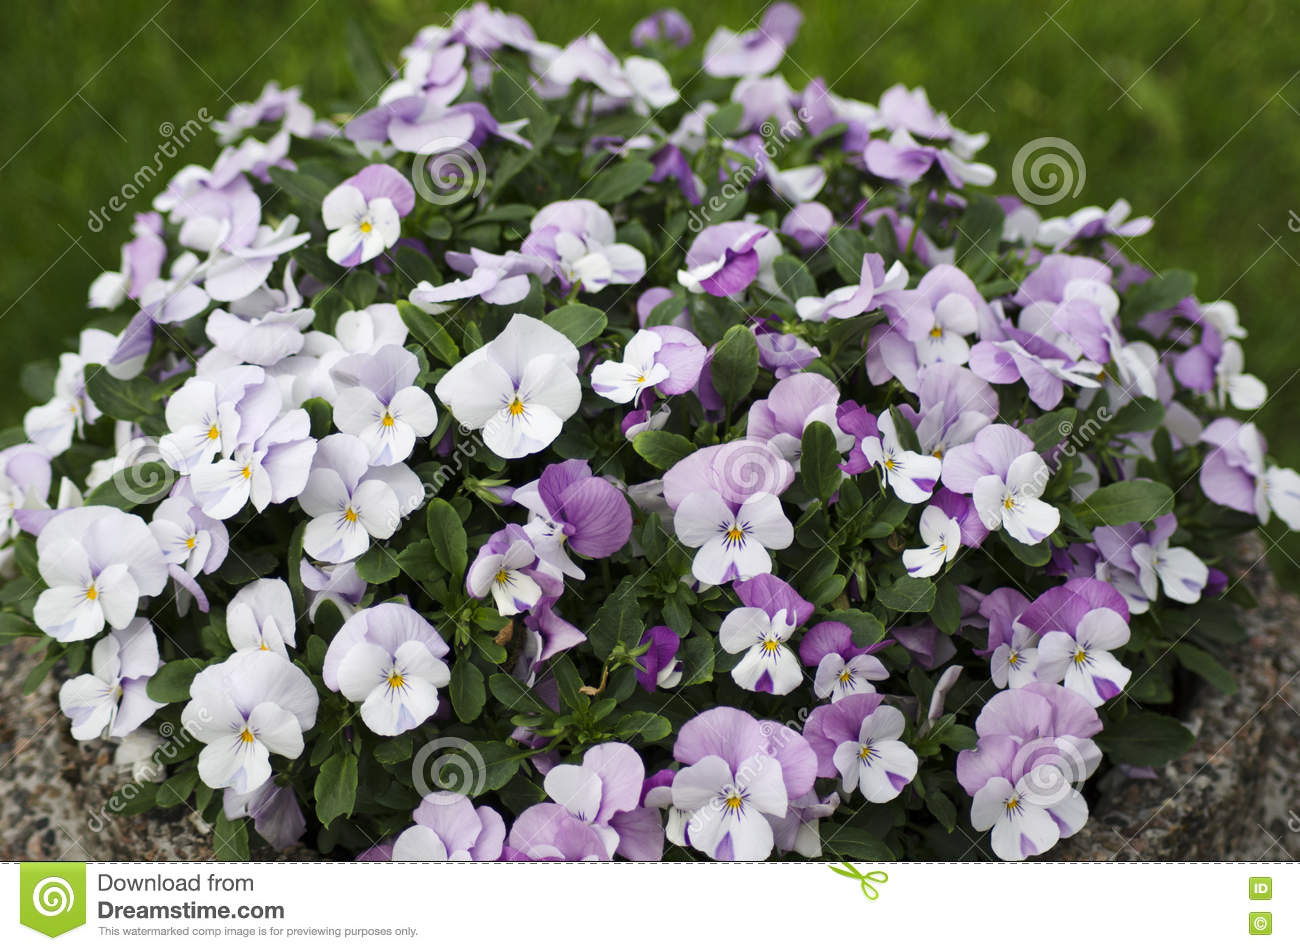 White and pink pansy flowers stock image image of planet sunny download white and pink pansy flowers stock image image of planet sunny mightylinksfo